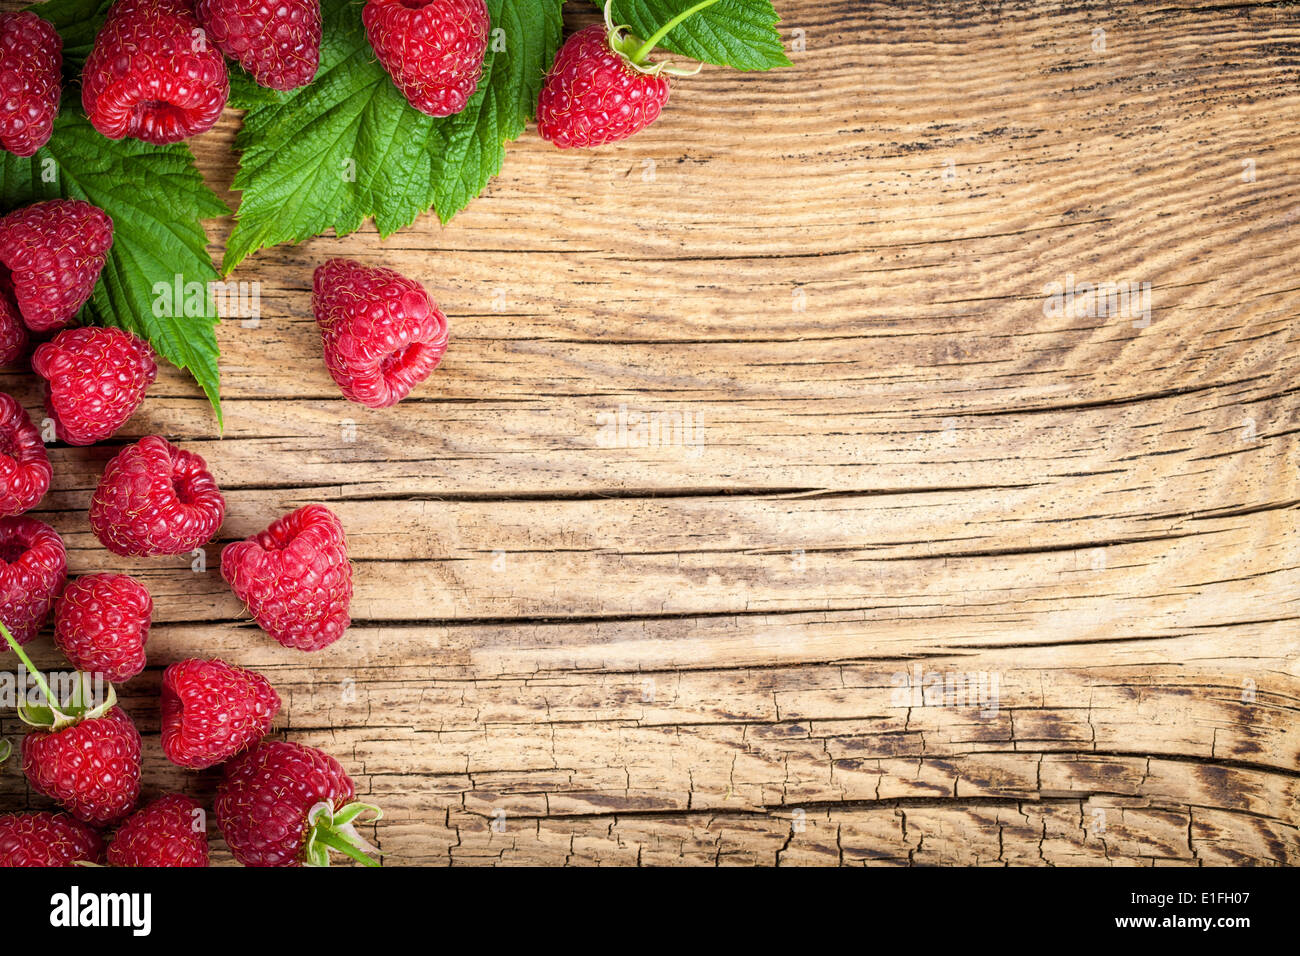 Raspberries on wooden table background. Copy space. Top view - Stock Image